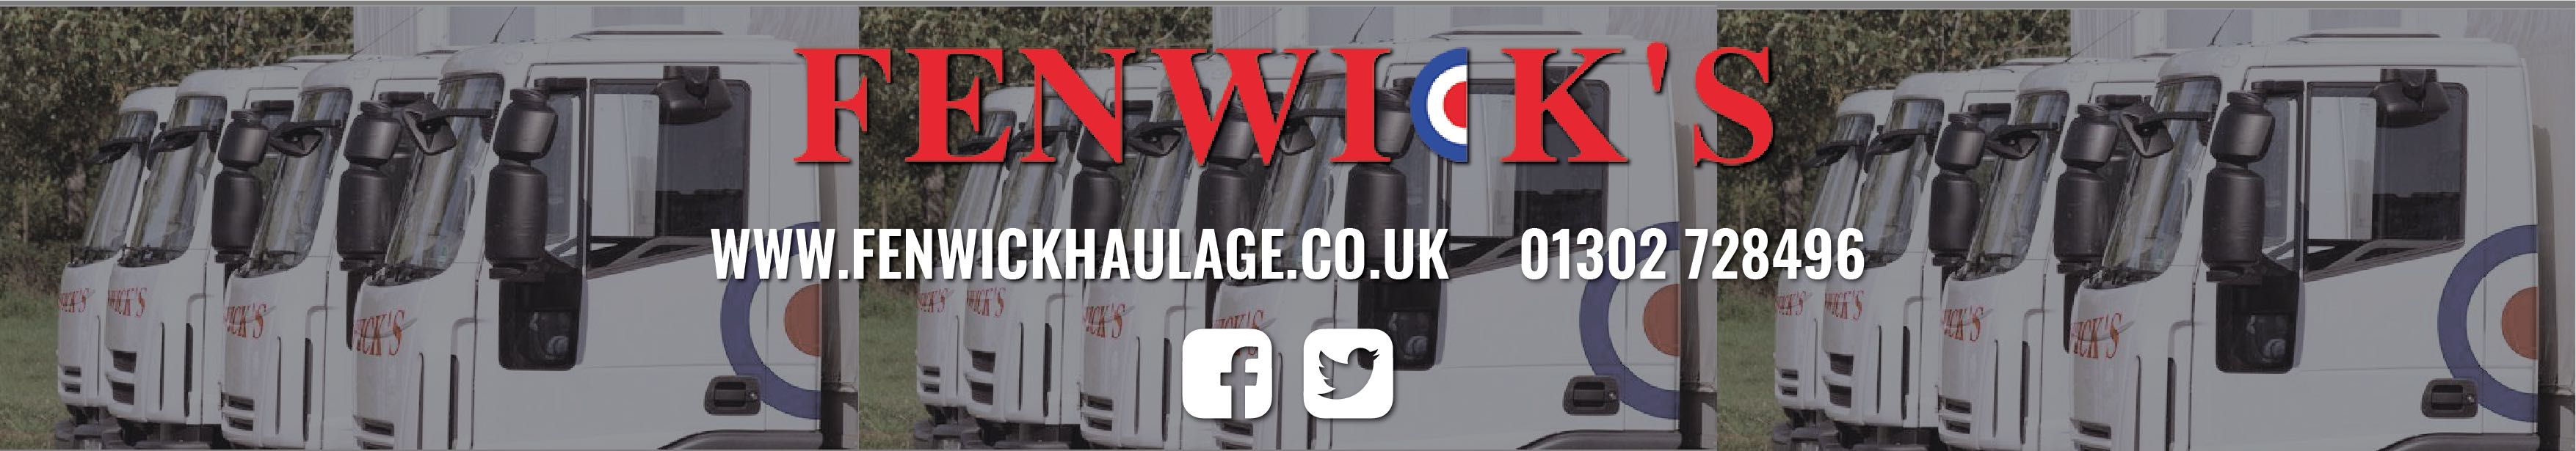 Fenwick Haulage Doncaster